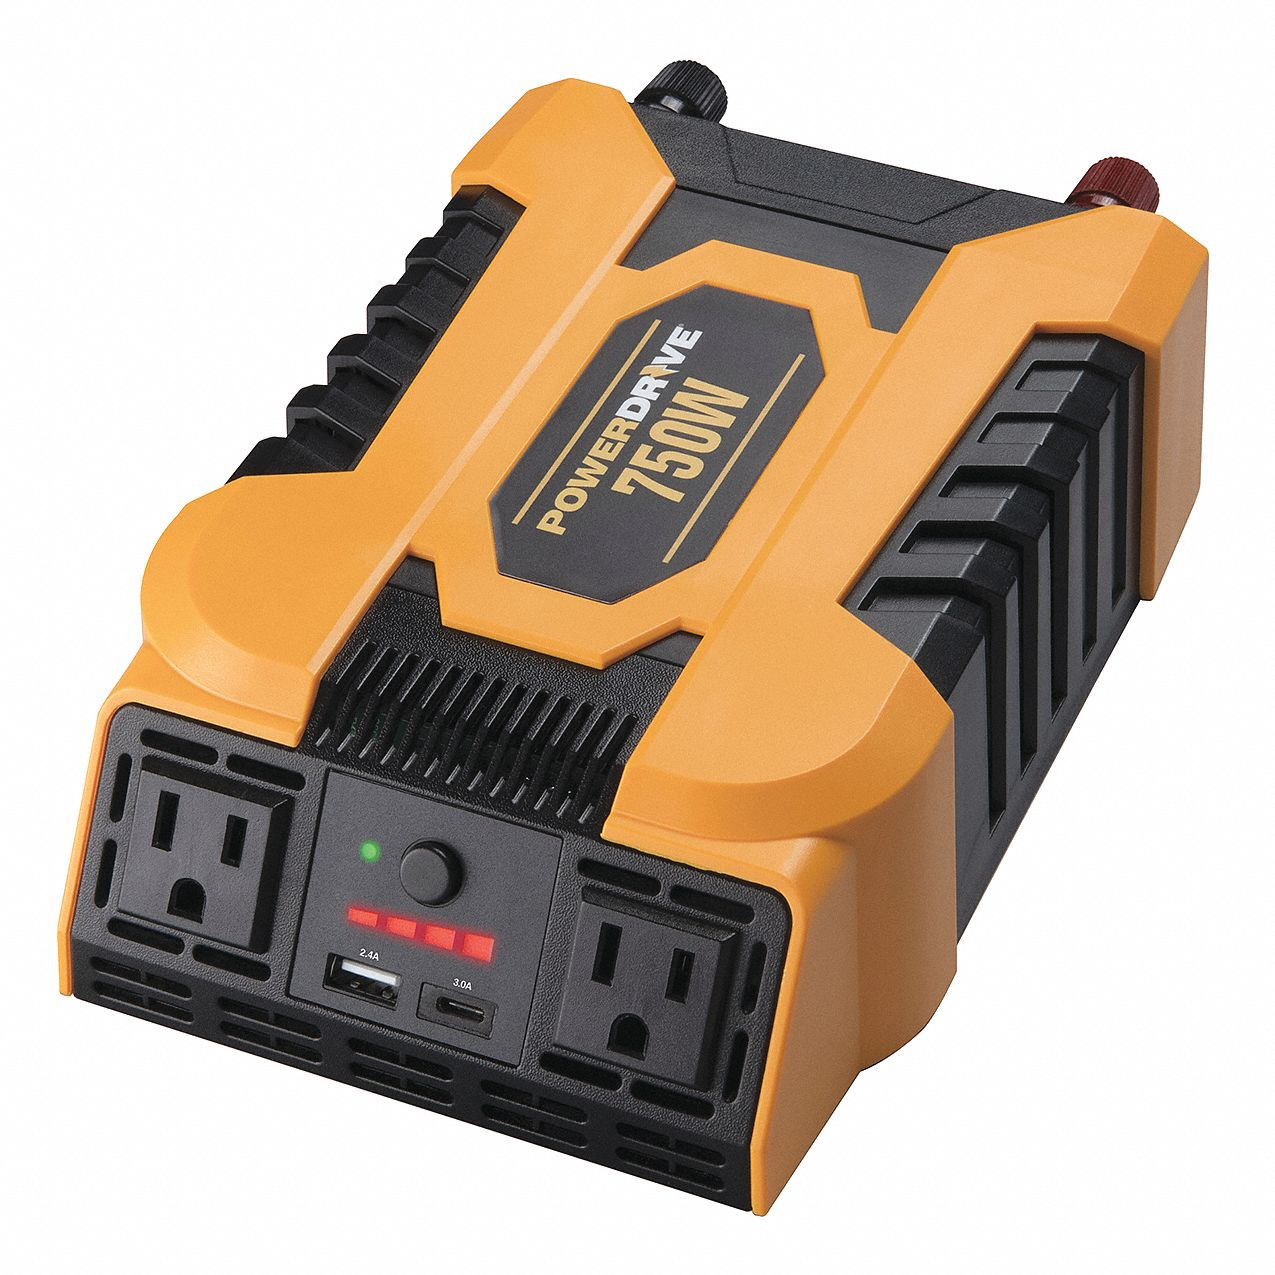 Inverter, 115VAC, 12VDC, 2-Outlet